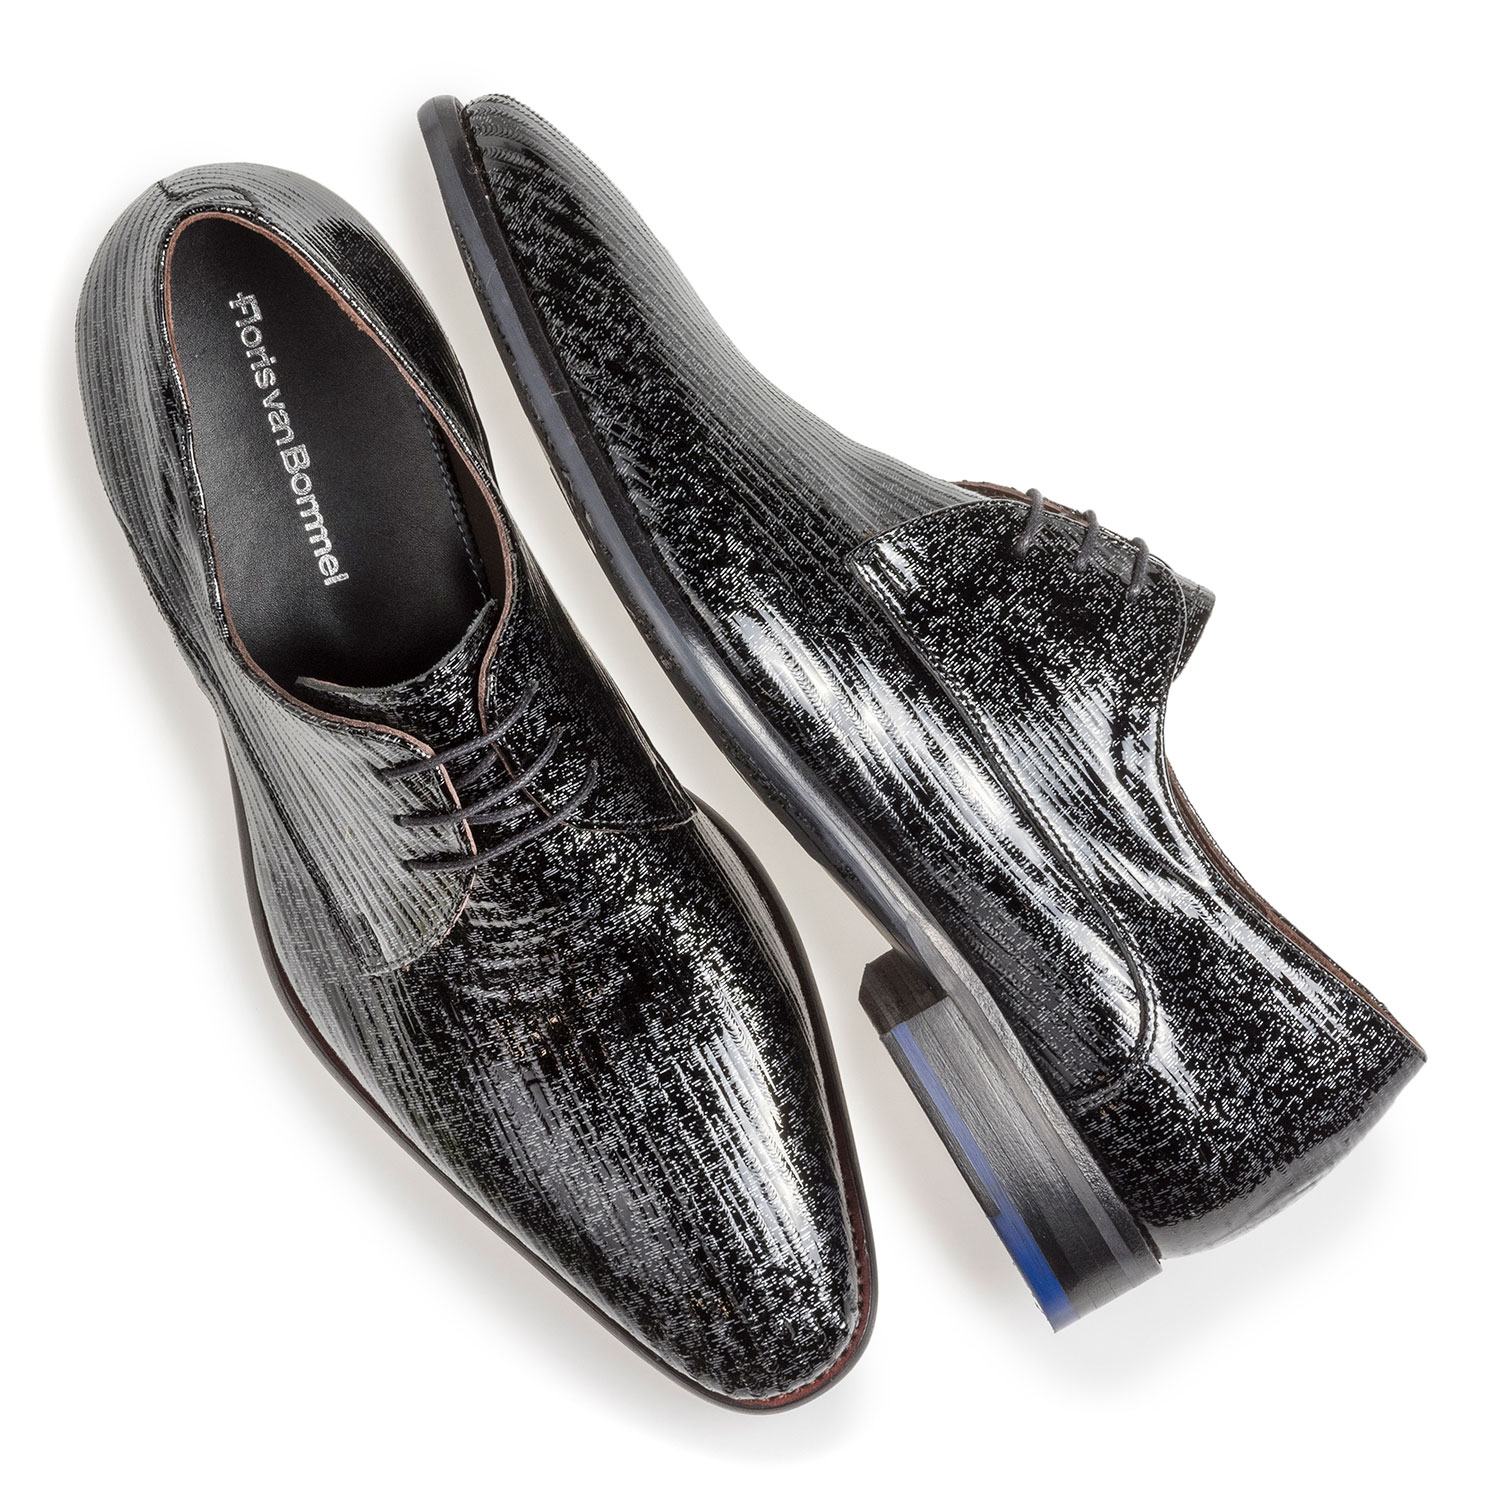 18146/12 - Black patent leather lace shoe with metallic print